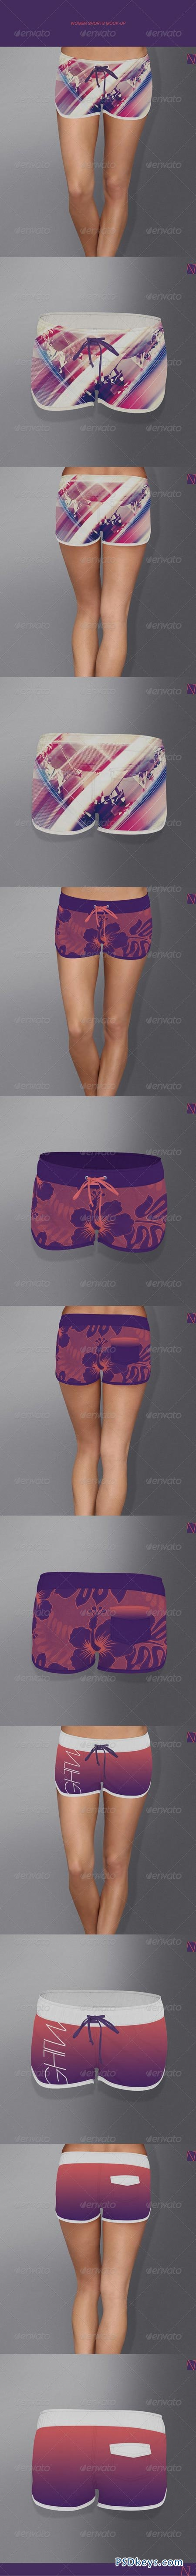 Women Shorts Mock-up 7707869